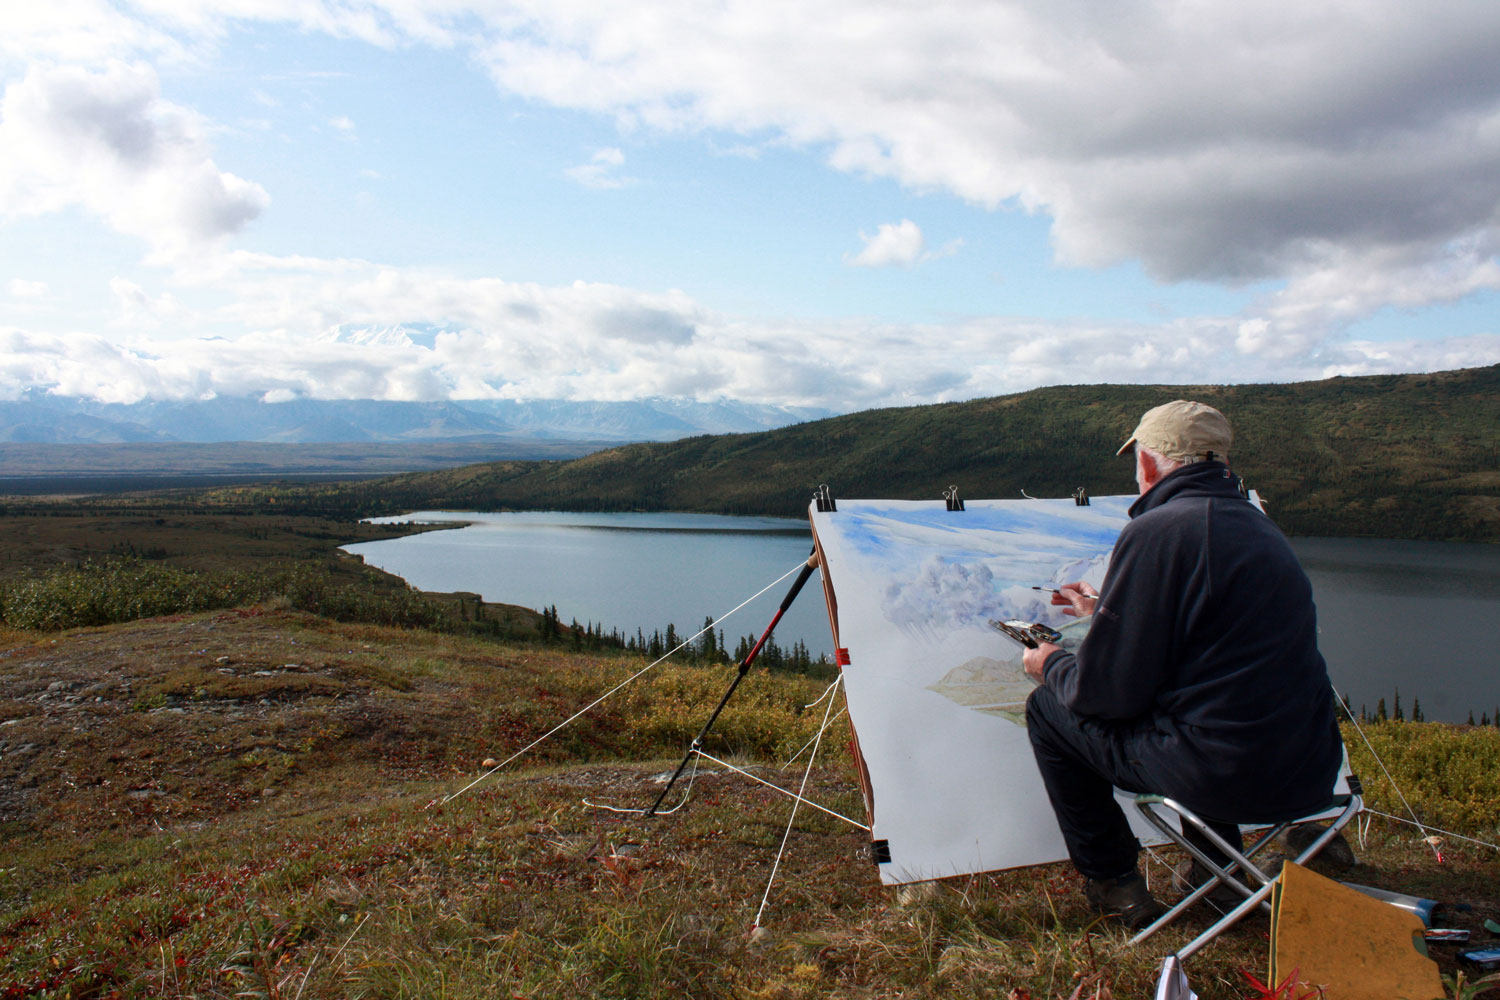 Tony Foster painting in Denali National Park, Alaska, August, 2014. Photo by Becky Williamson. Courtesy Foster Art & Wilderness Foundation.  (Painting is  Denali and Wonder Lake Looking South from Ansel Adams Point , 2014. Inventory #2007.1.6)